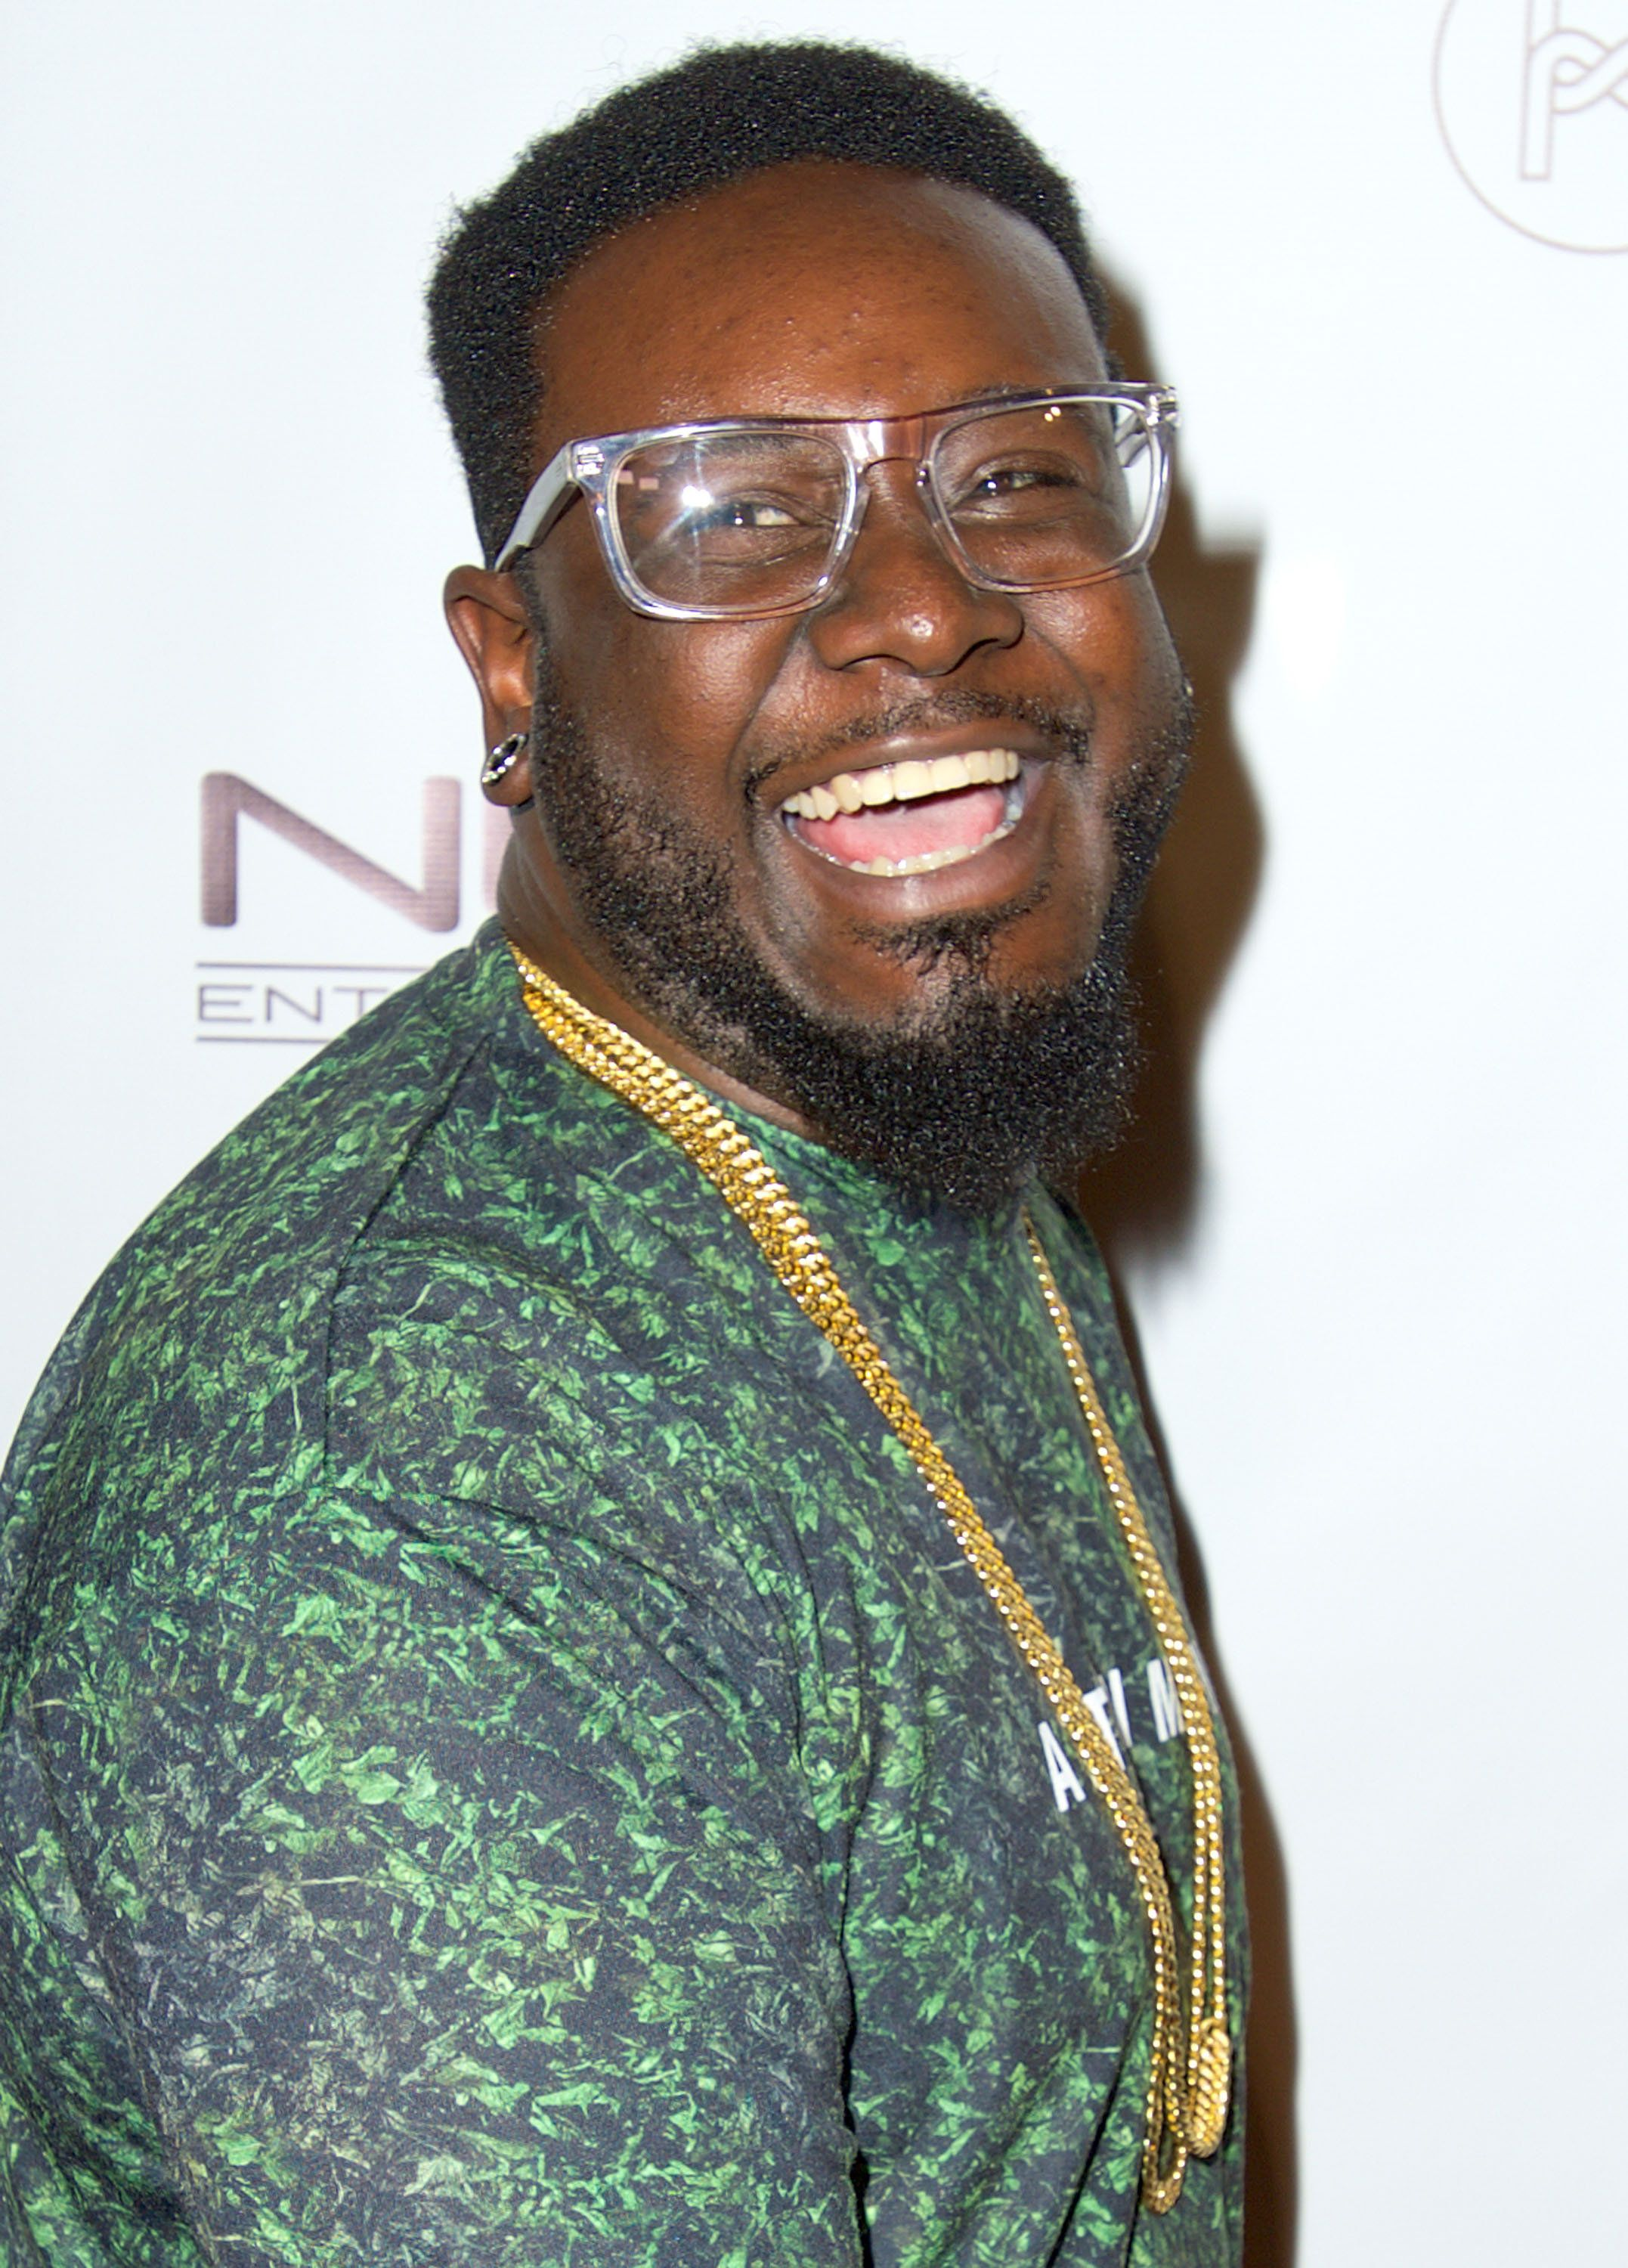 LOS ANGELES, CA - AUGUST 30:  T-Pain attends Diddy and Friends #FINNAGETLOOSE MTV VMA After Party at SupperClub Los Angeles on August 30, 2015 in Los Angeles, California.  (Photo by Unique Nicole/FilmMagic)